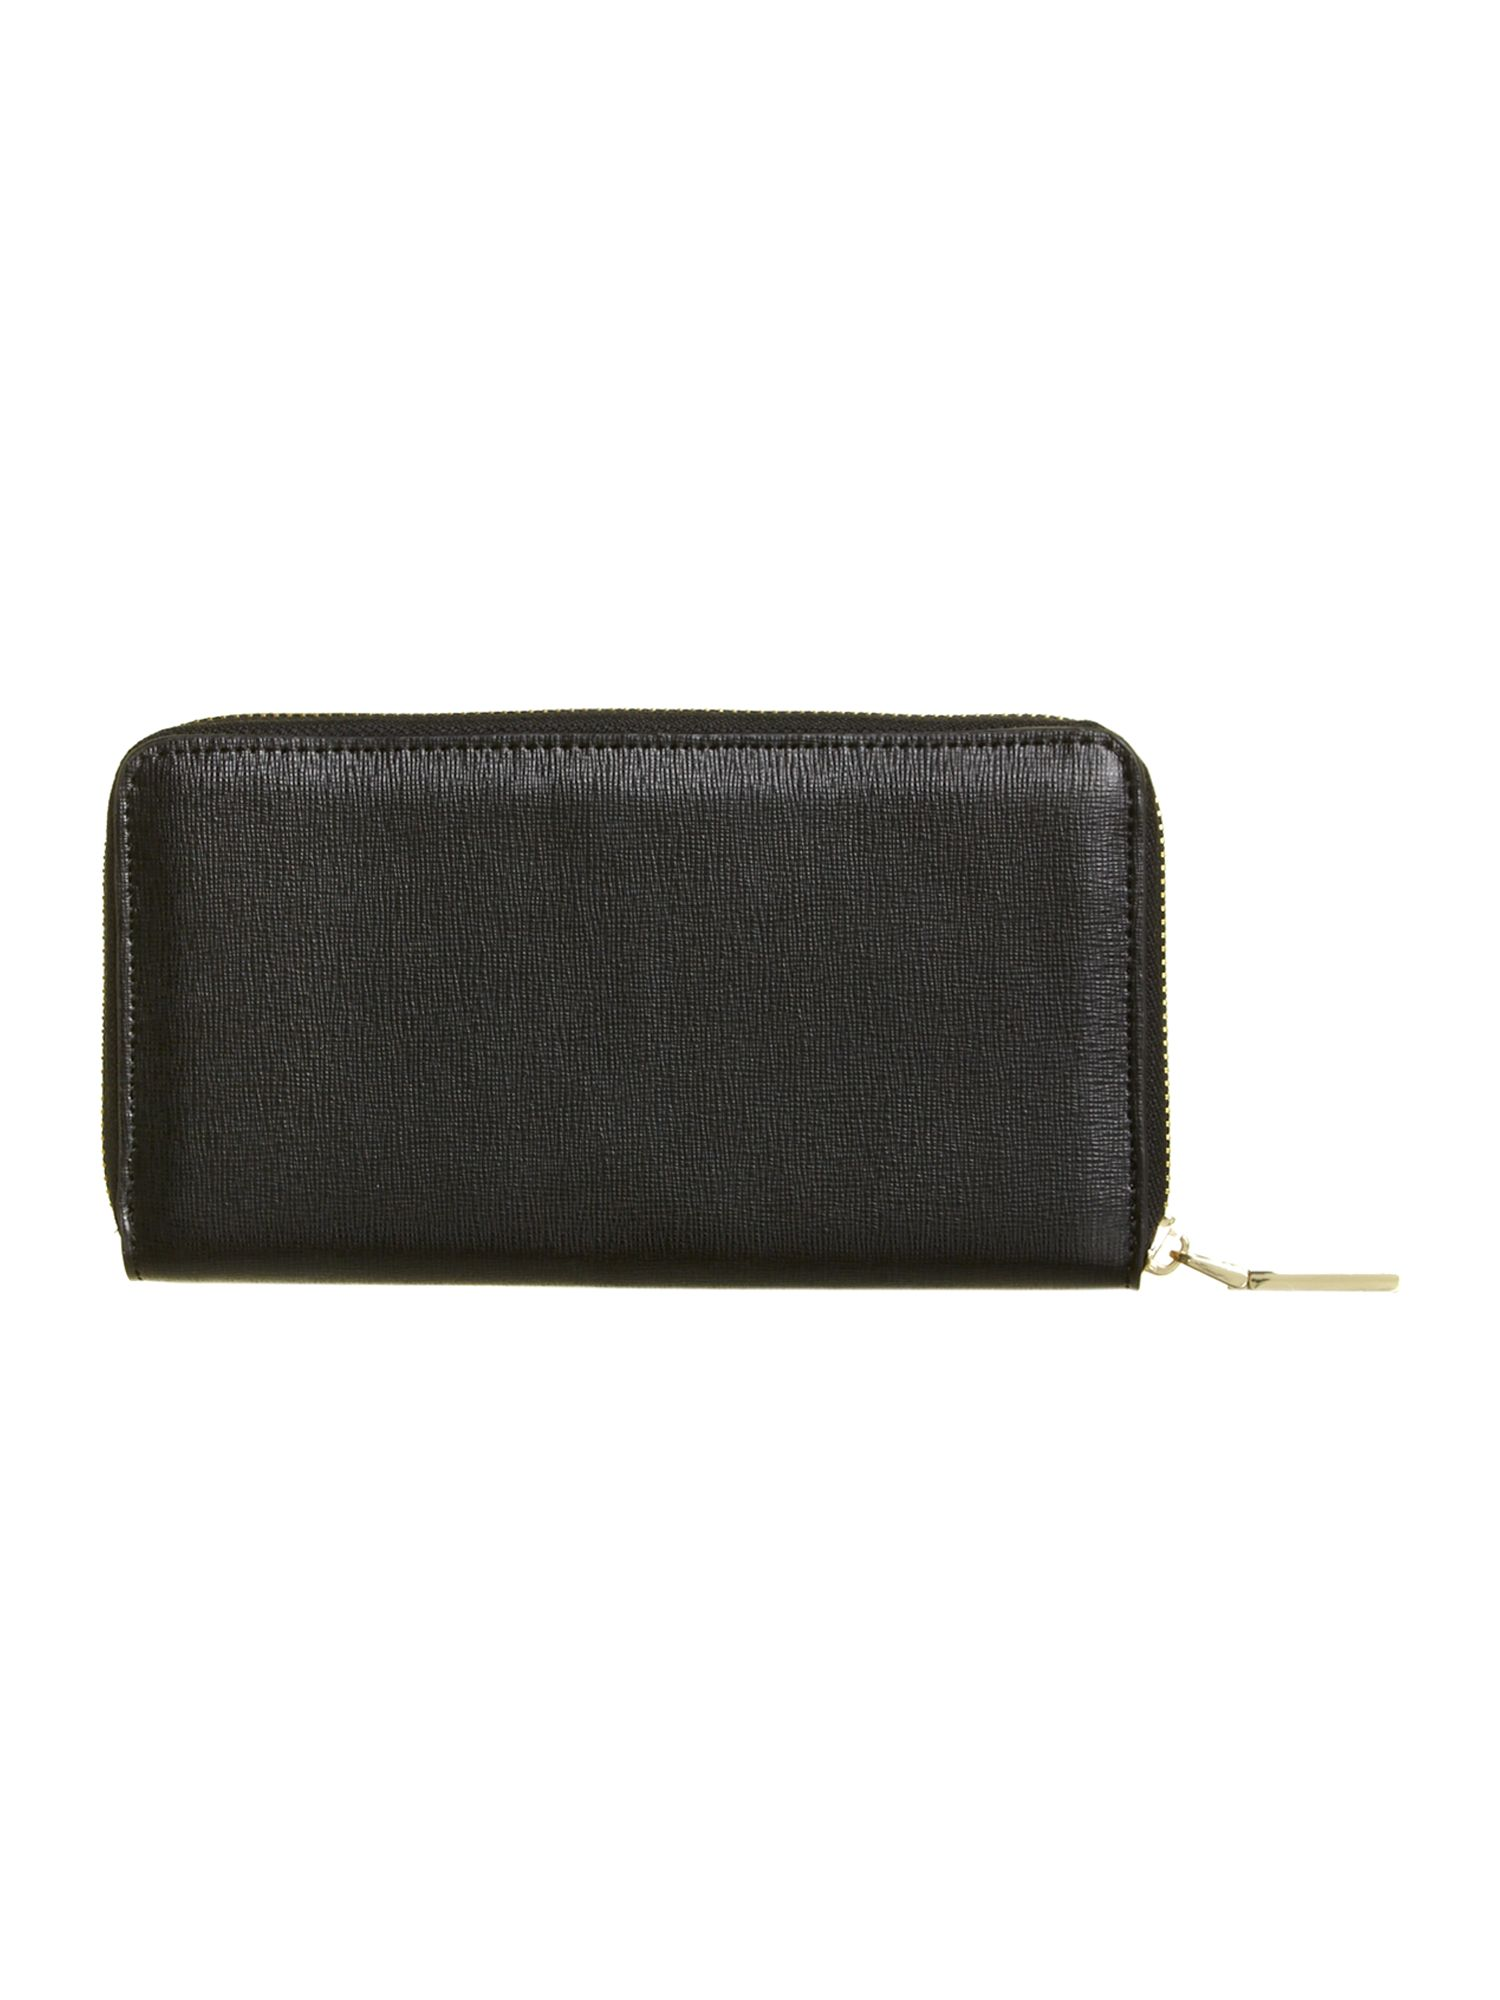 Adele zip around purse